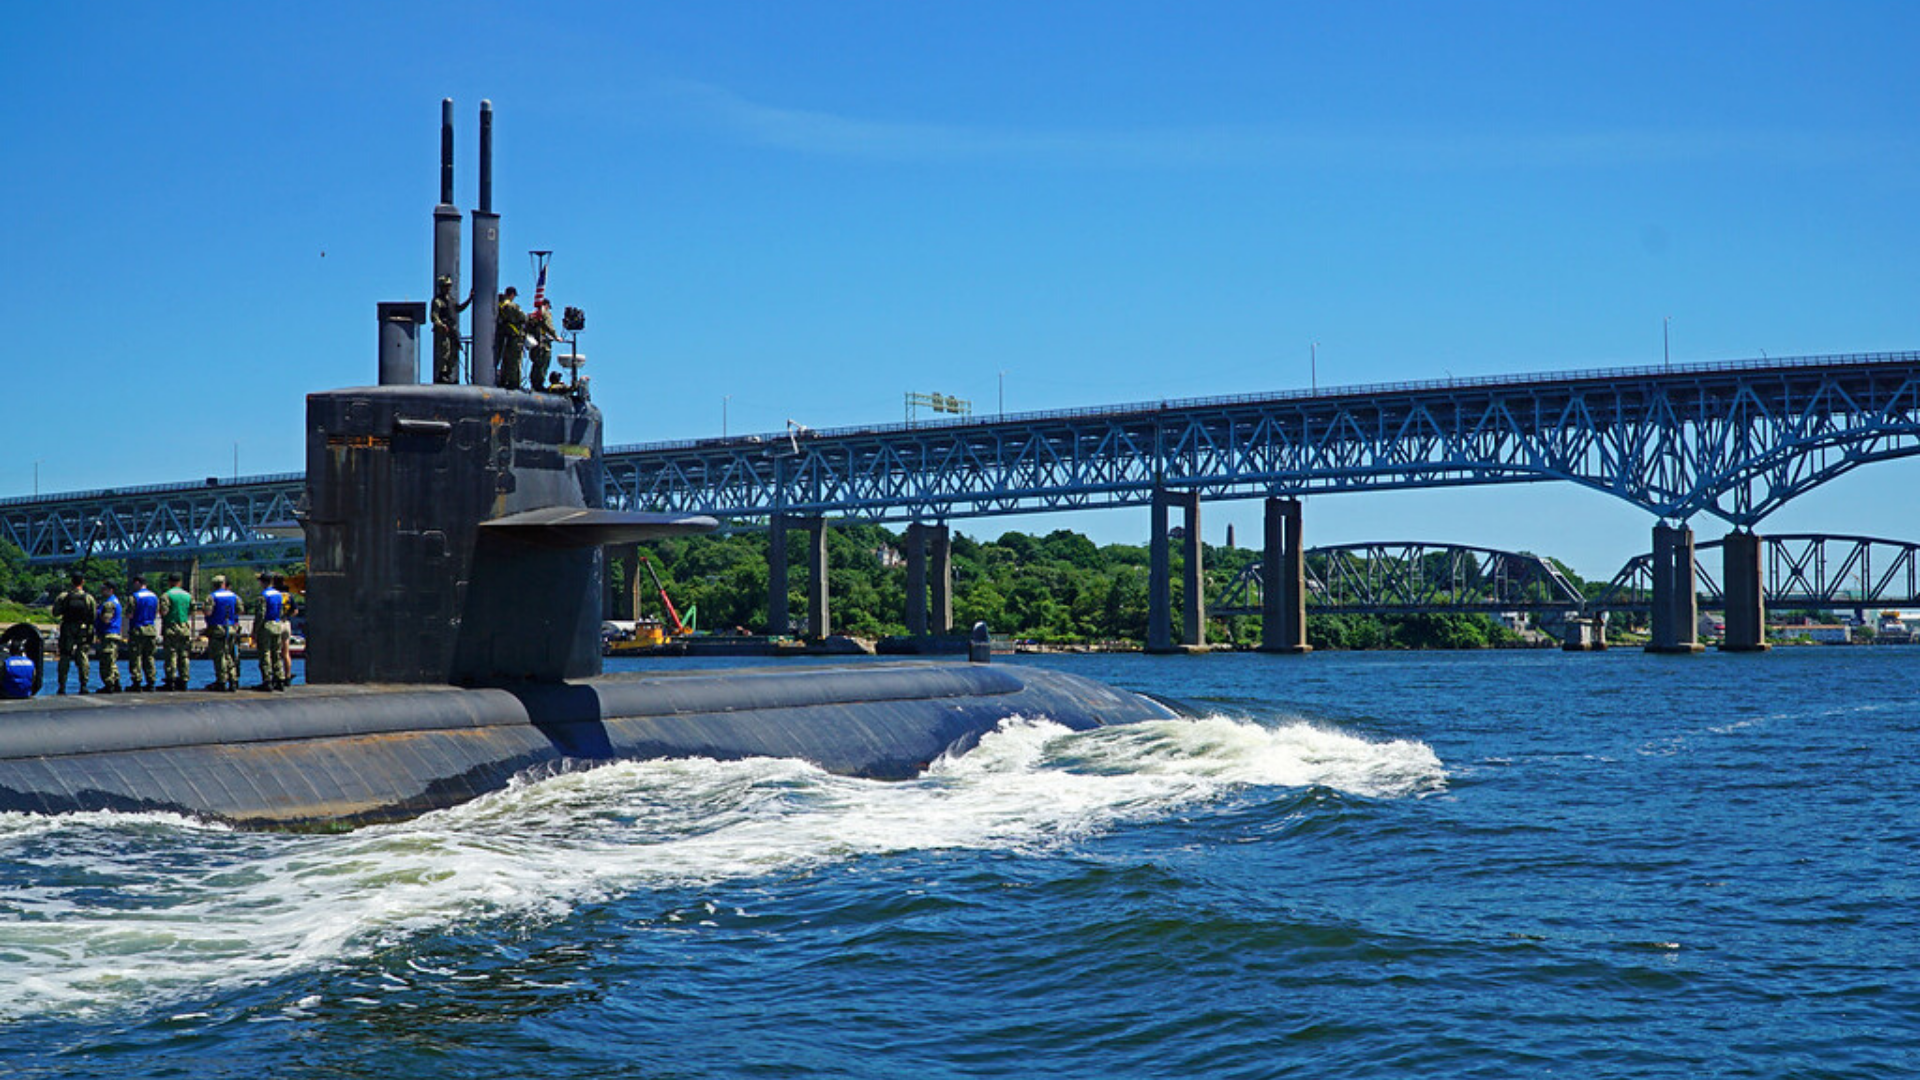 Boat Tour: Submarines, Battlefields, and Betrayers. Military Stories on the Thames.